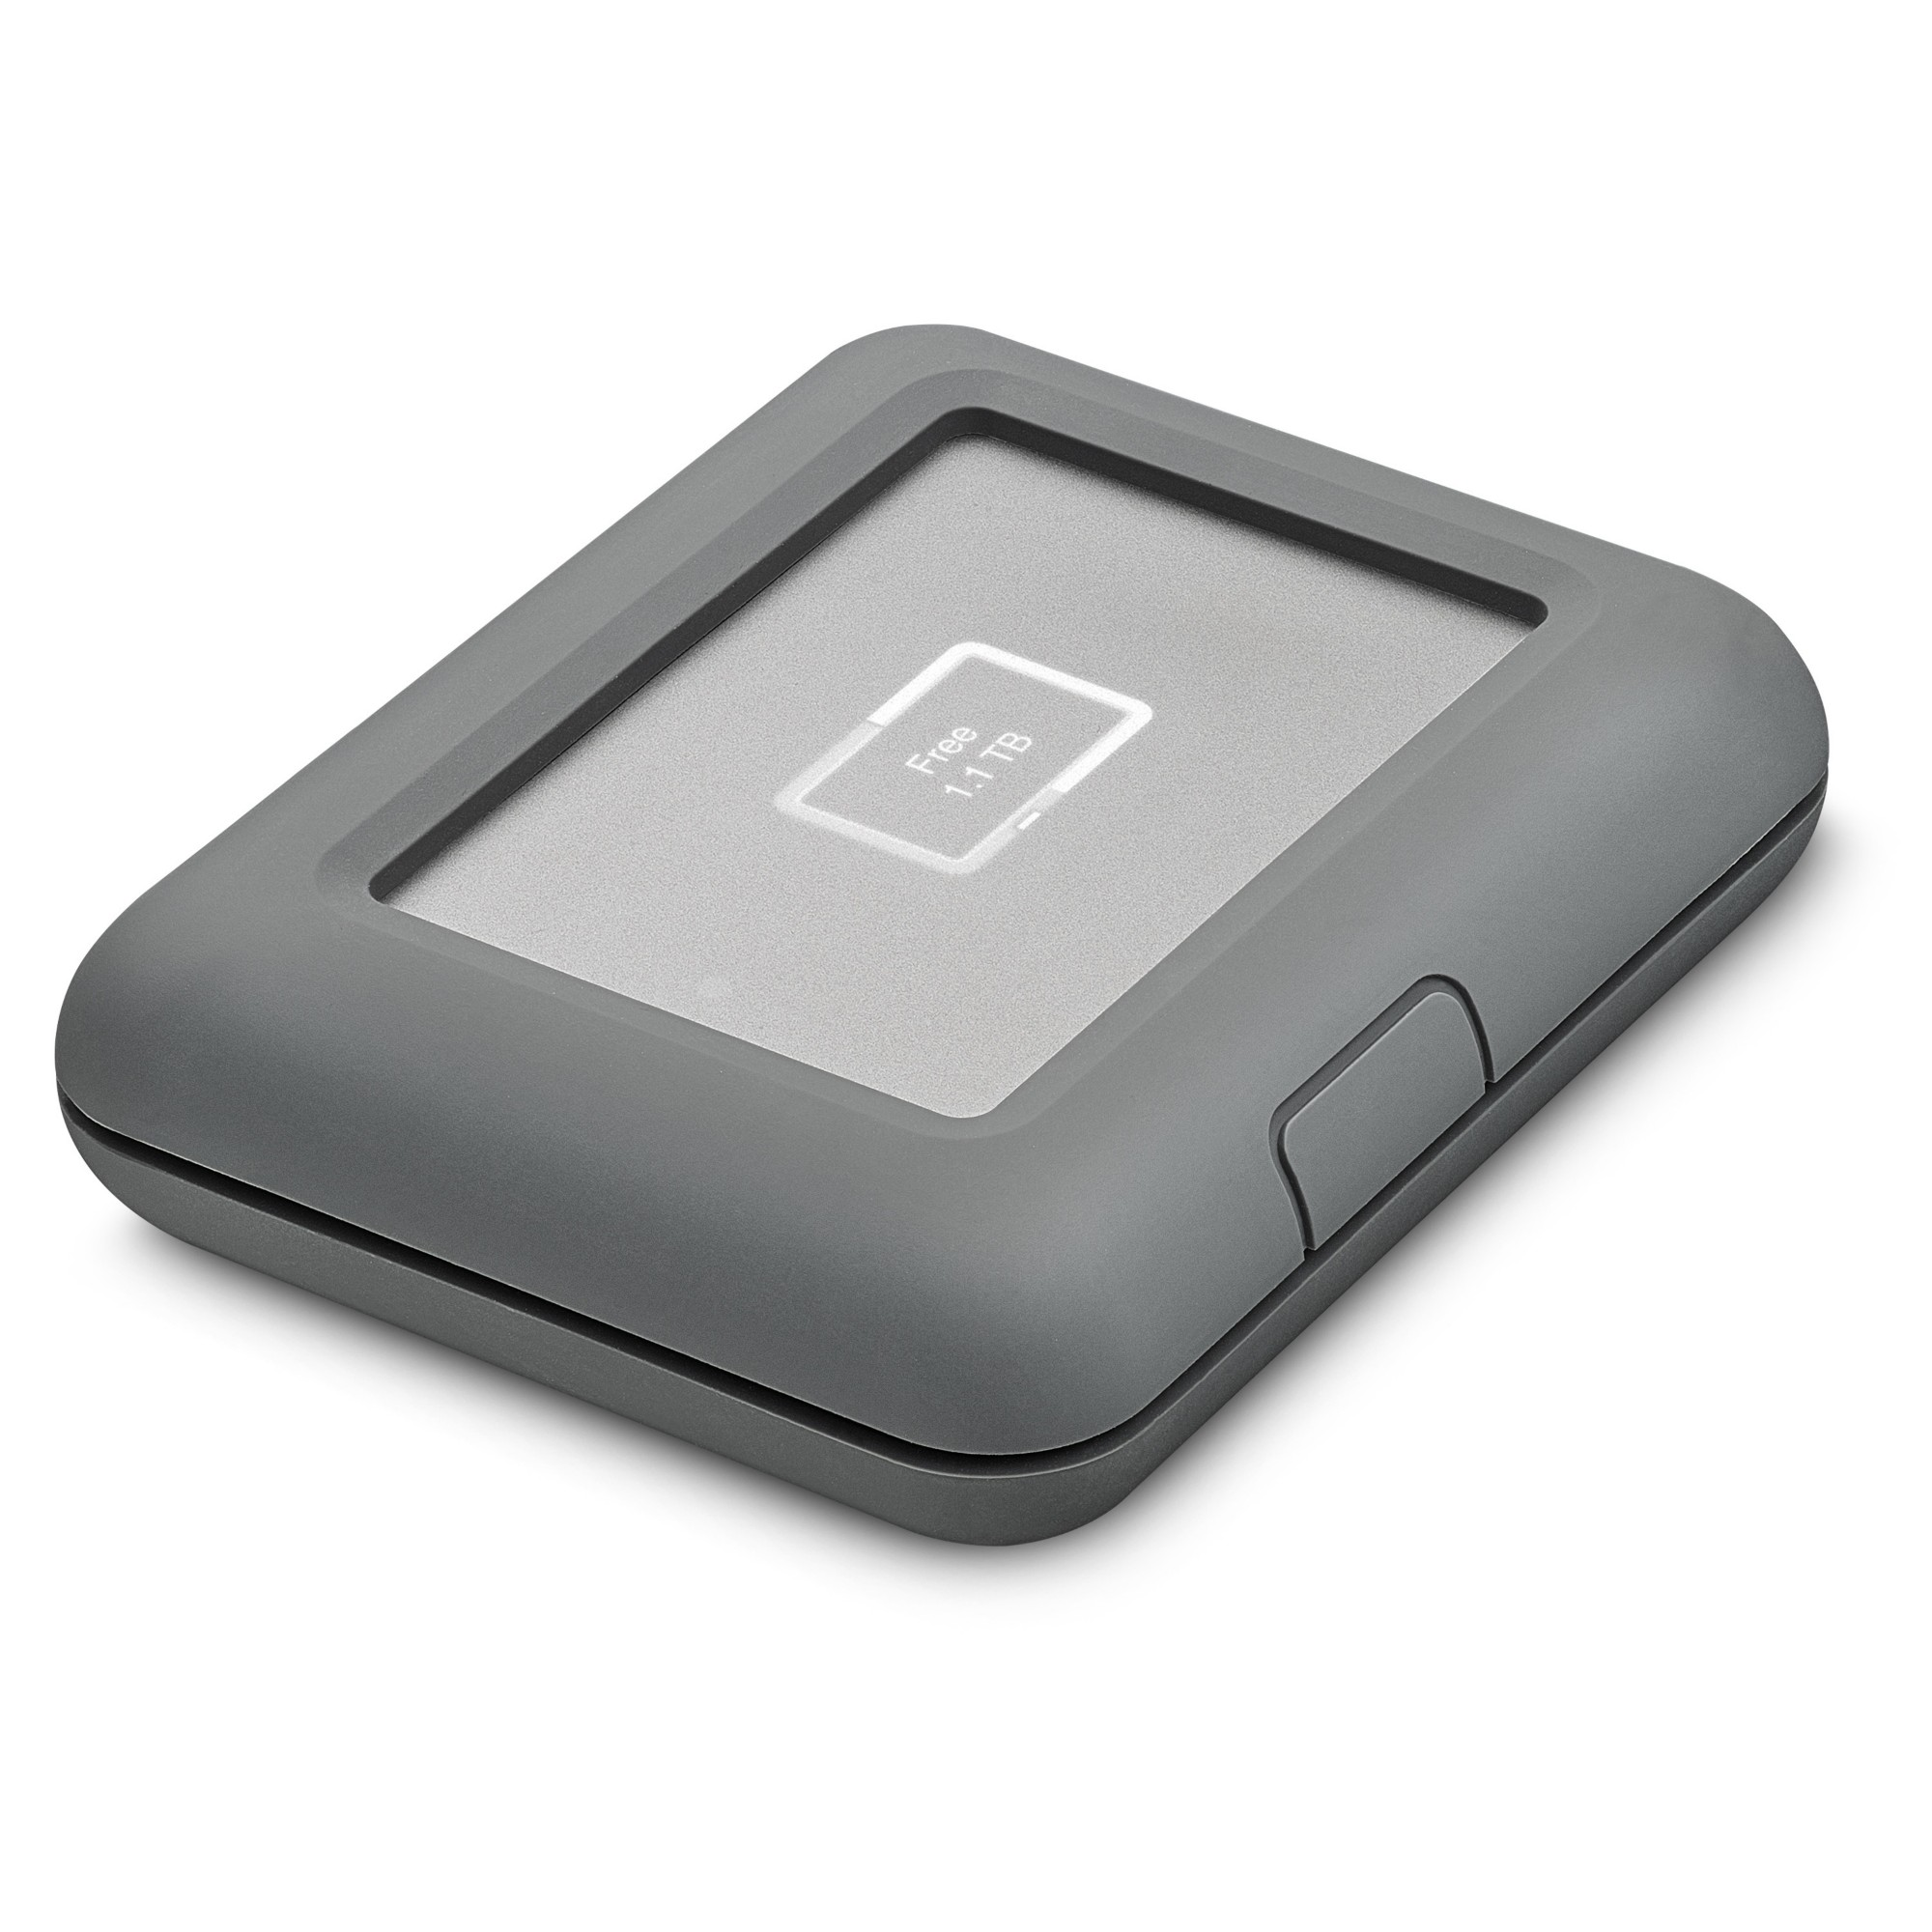 LACIE STGU2000400 DJI COPILOT BOSS 2000GB GREY EXTERNAL HARD DRIVE